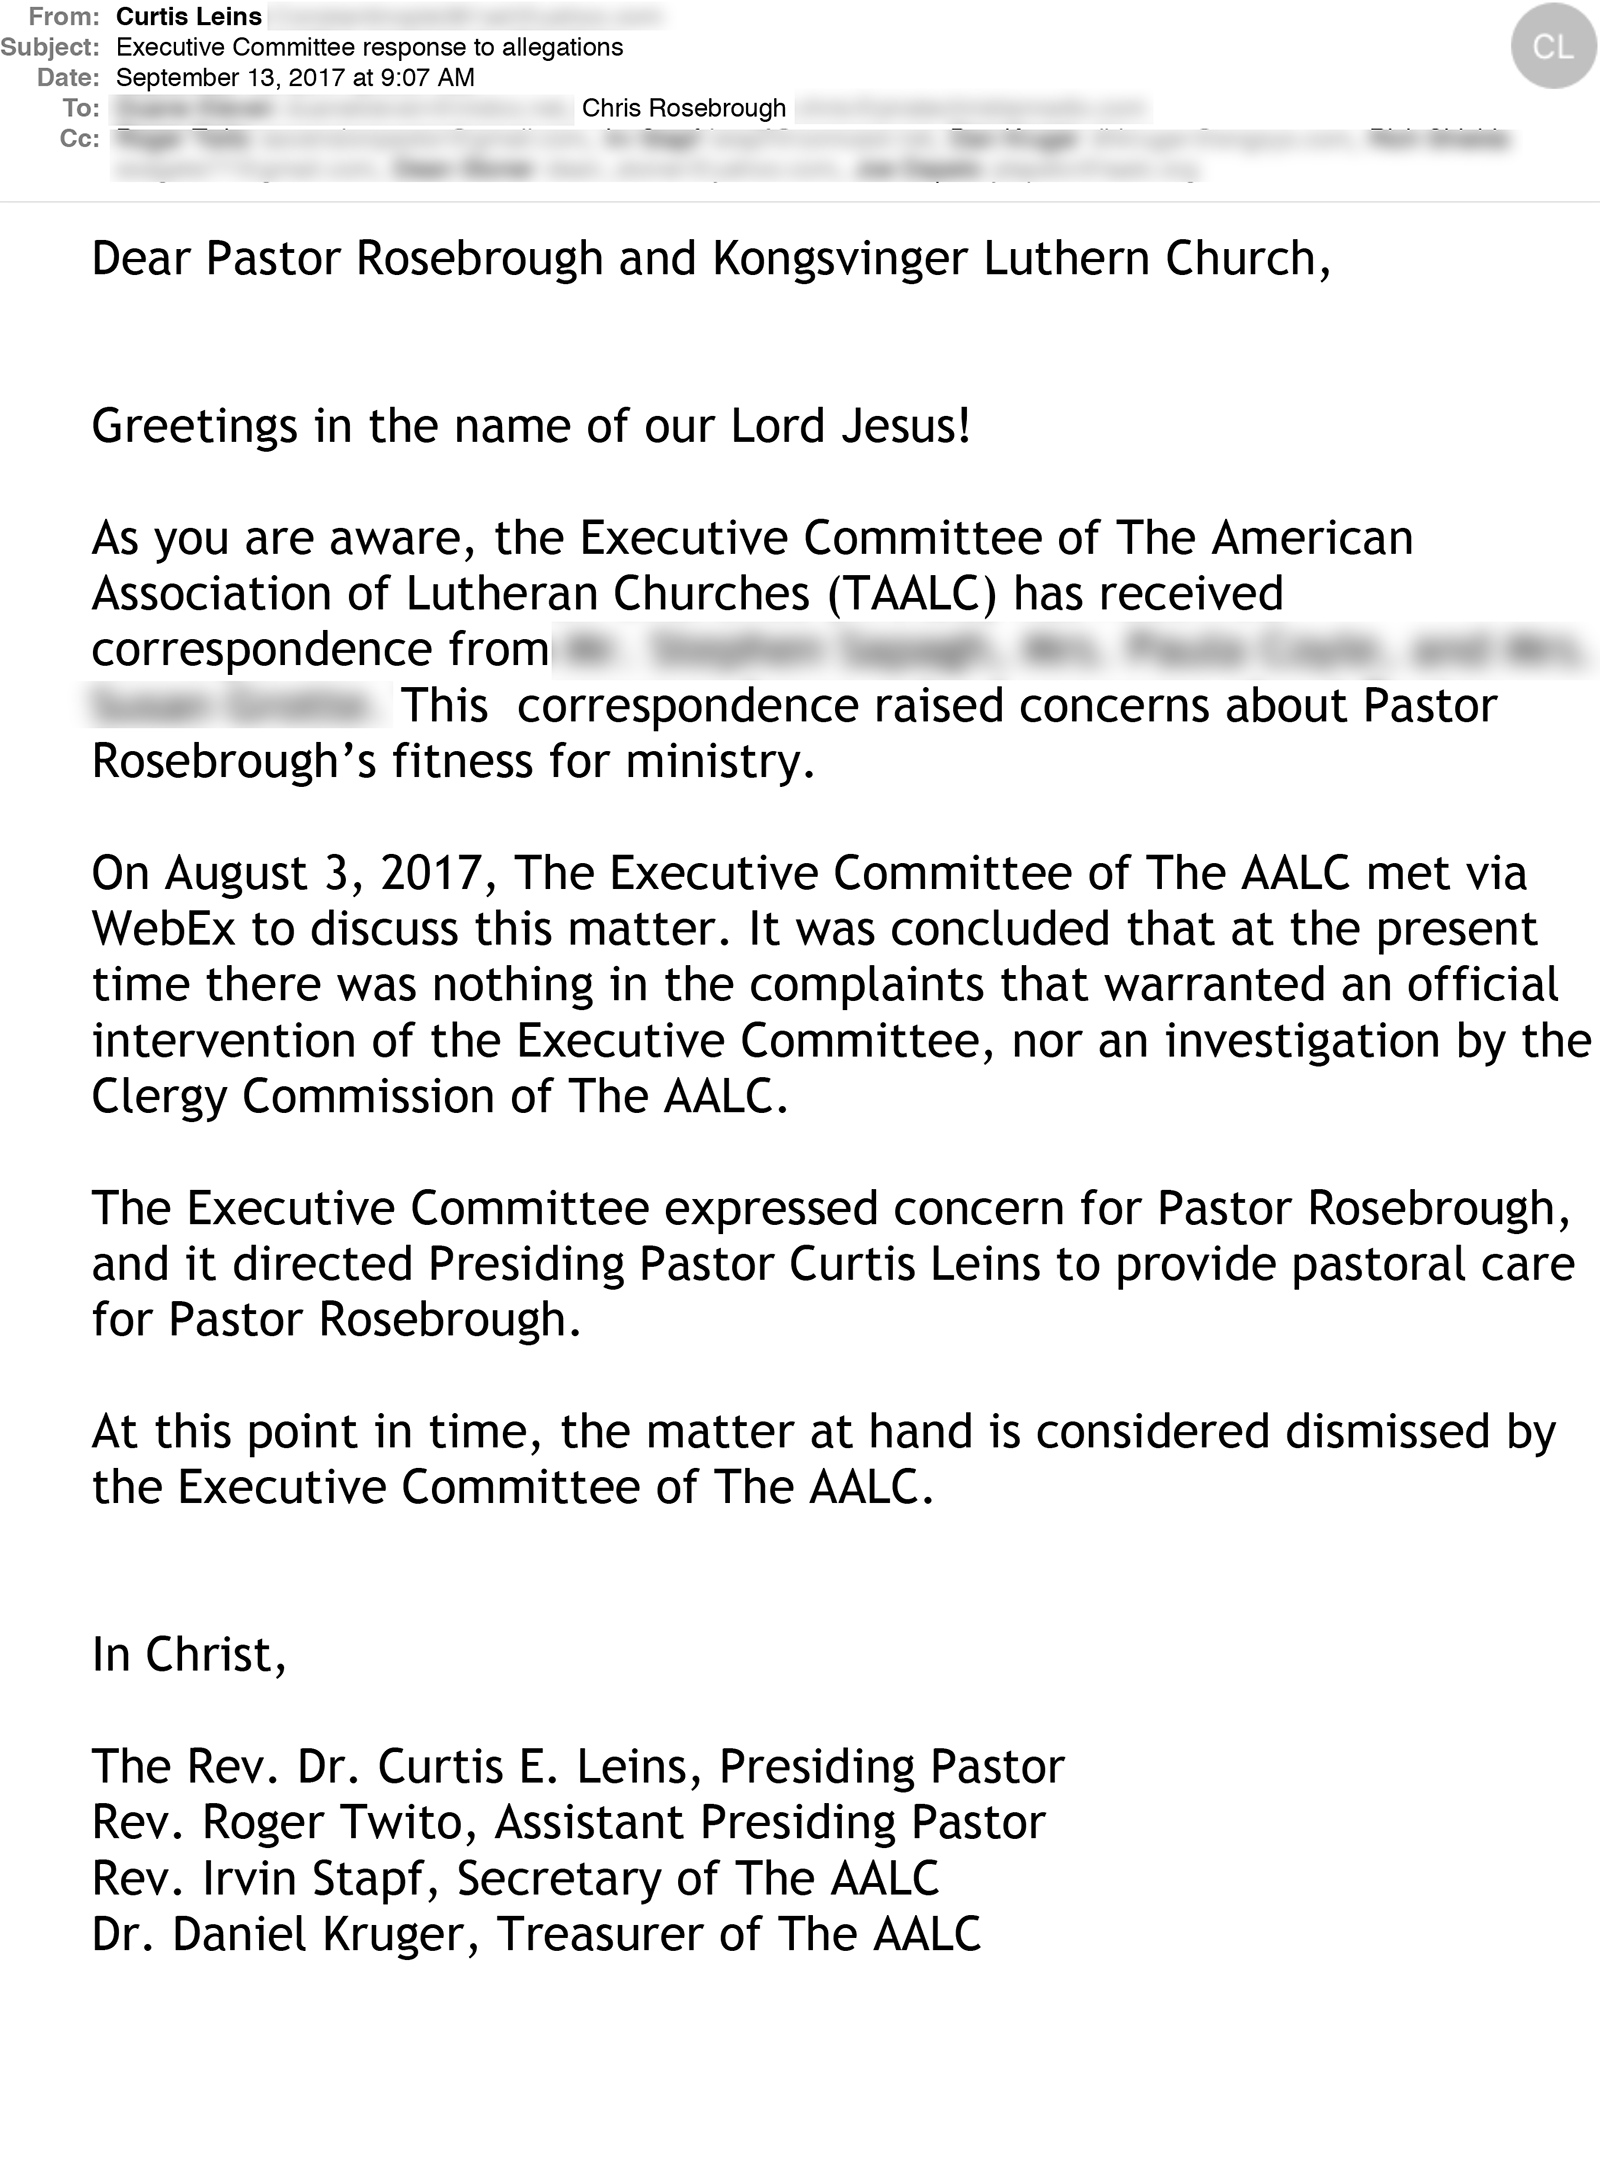 Executive Committee response to allegations-1 copy.png